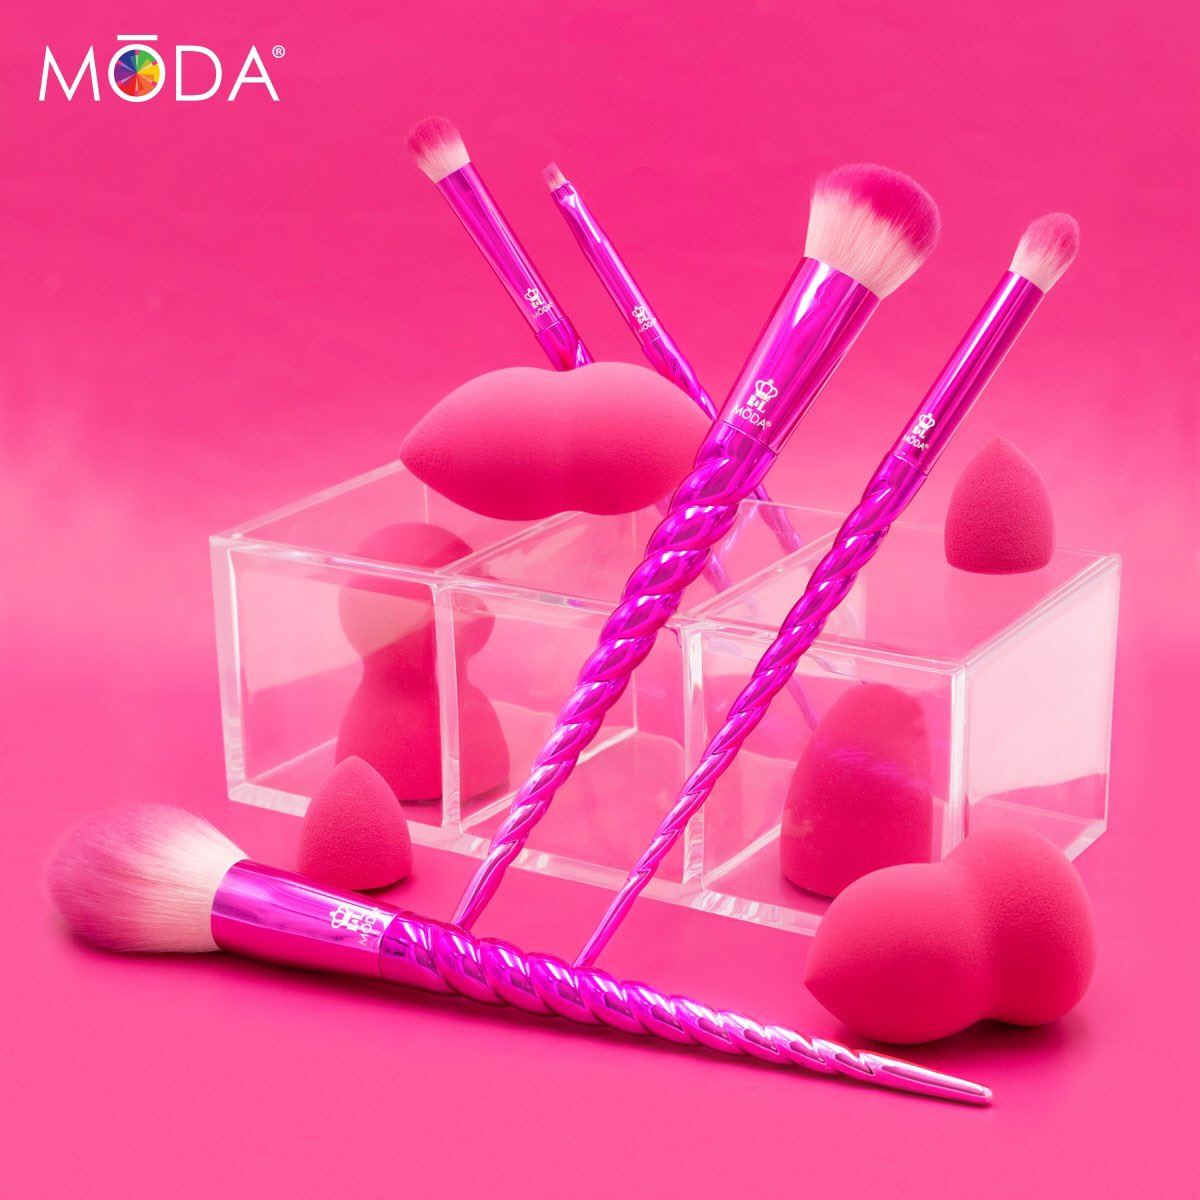 ⭐ MŌDA® ALL-STAR SALE ⭐ Make a #beautifullybold statement with the #ModaMythical collection and MŌDA® Magic Sponges by shopping select sets 50% OFF during our 24HR flash deal FEB. 5TH online — an ICONIC discount for our Mavens! Only at http://www.modabrush.com